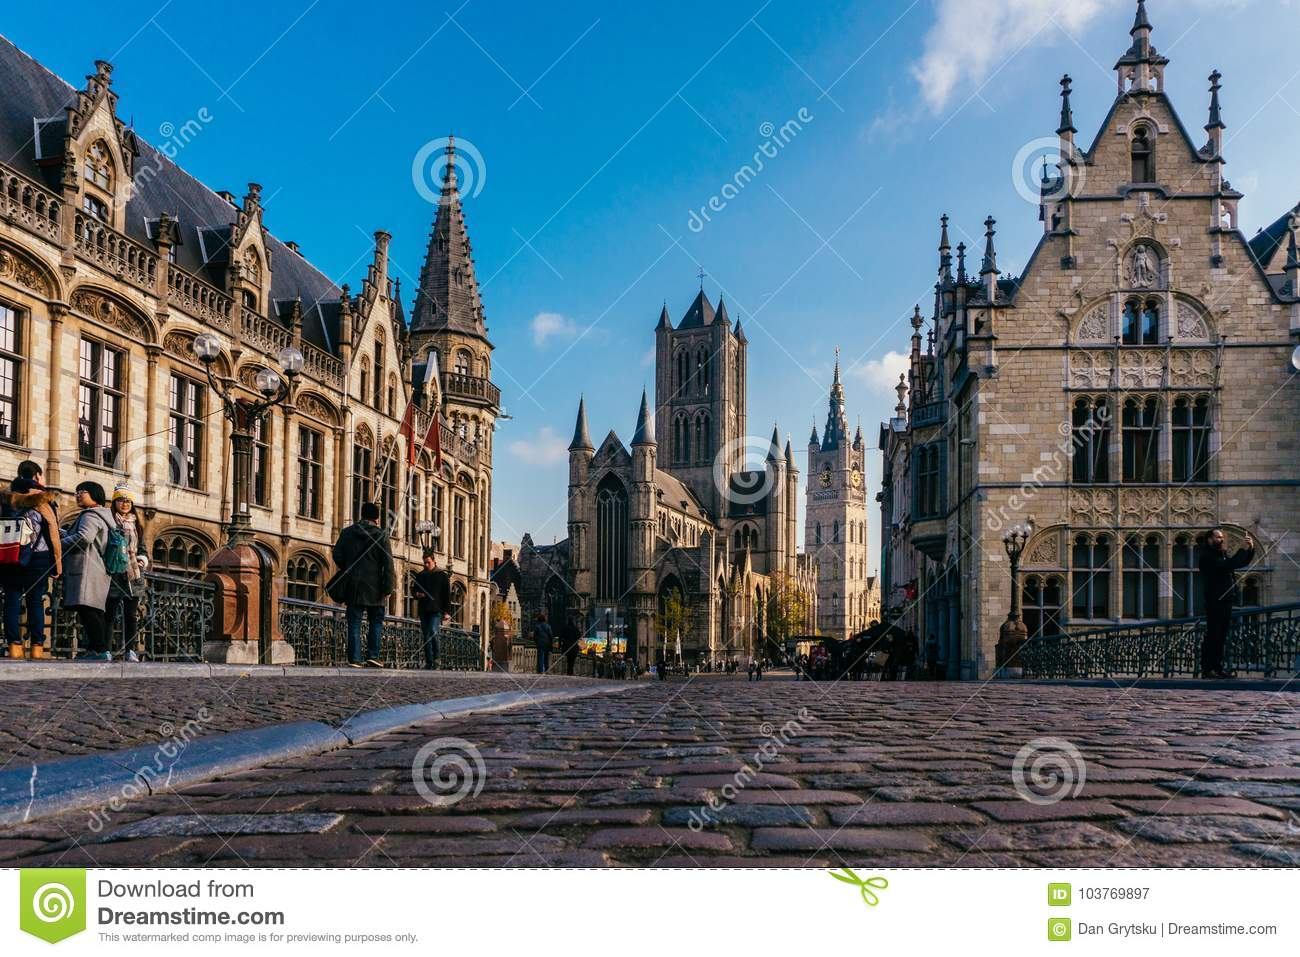 Ghent, Belgium: description, history of the city, sights and interesting facts 10